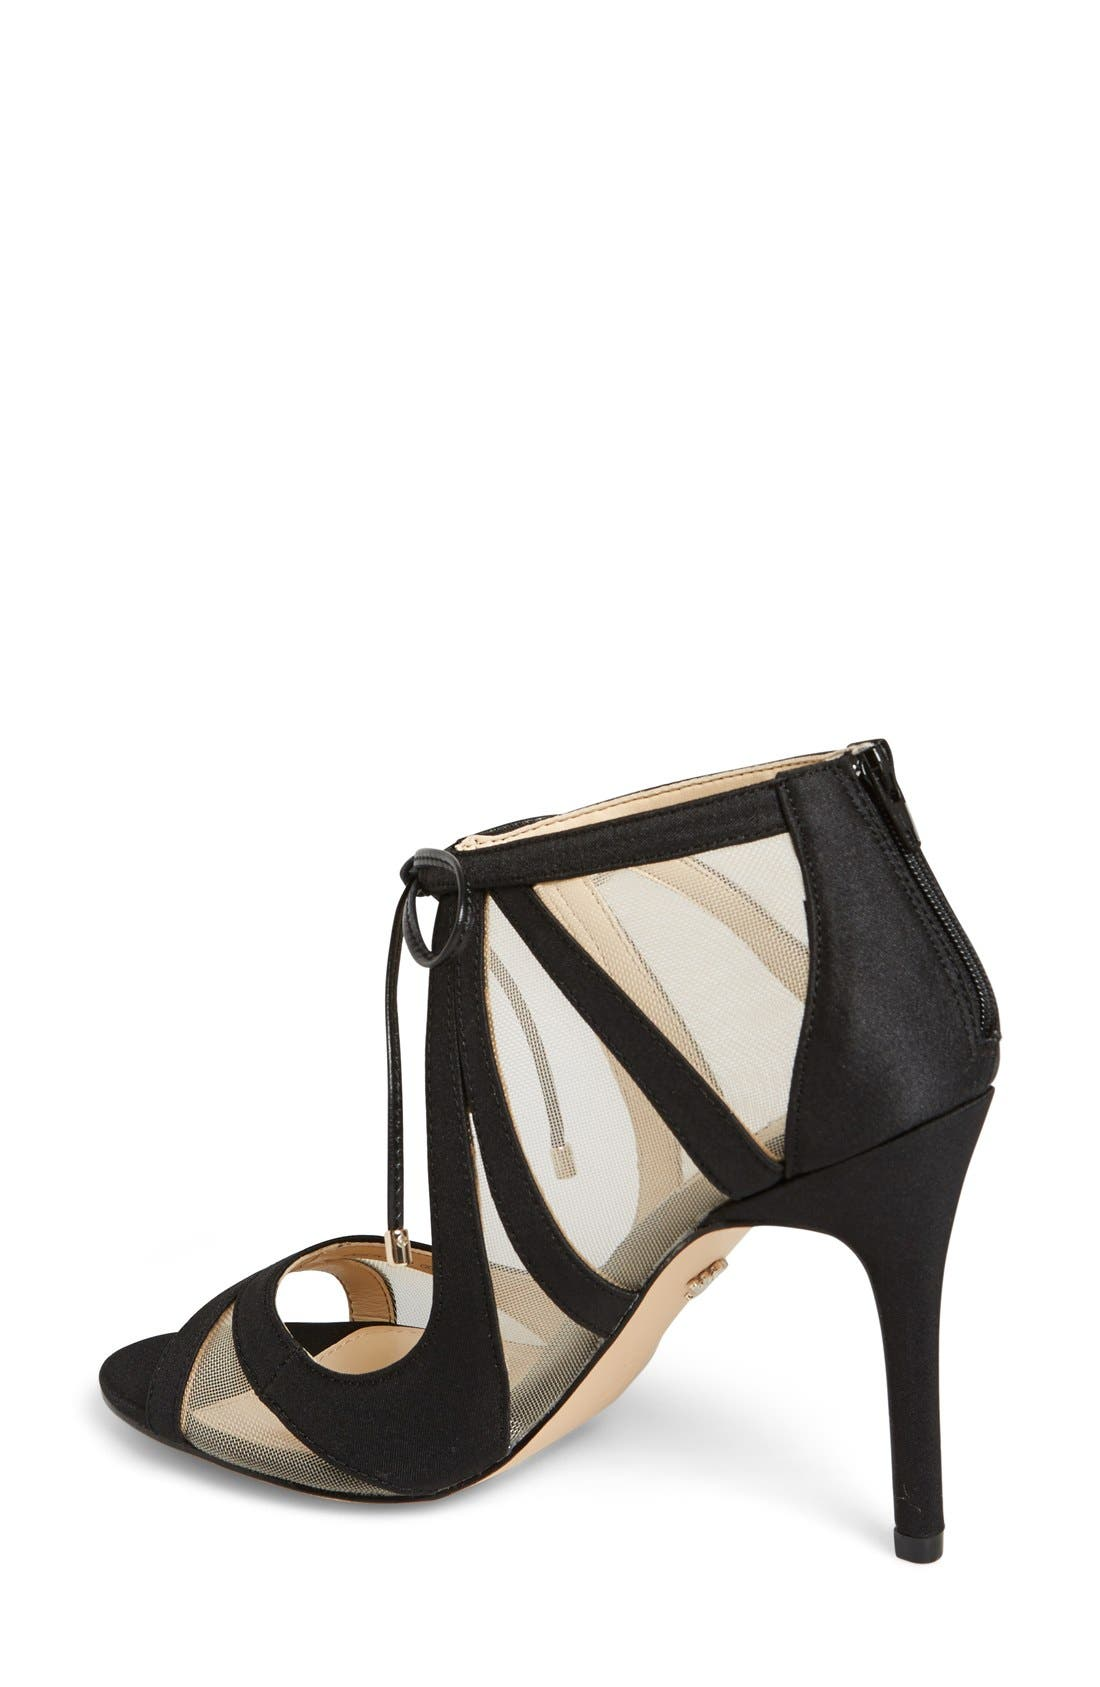 NINA, Cherie Illusion Sandal, Alternate thumbnail 4, color, BLACK SATIN/ NUDE MESH